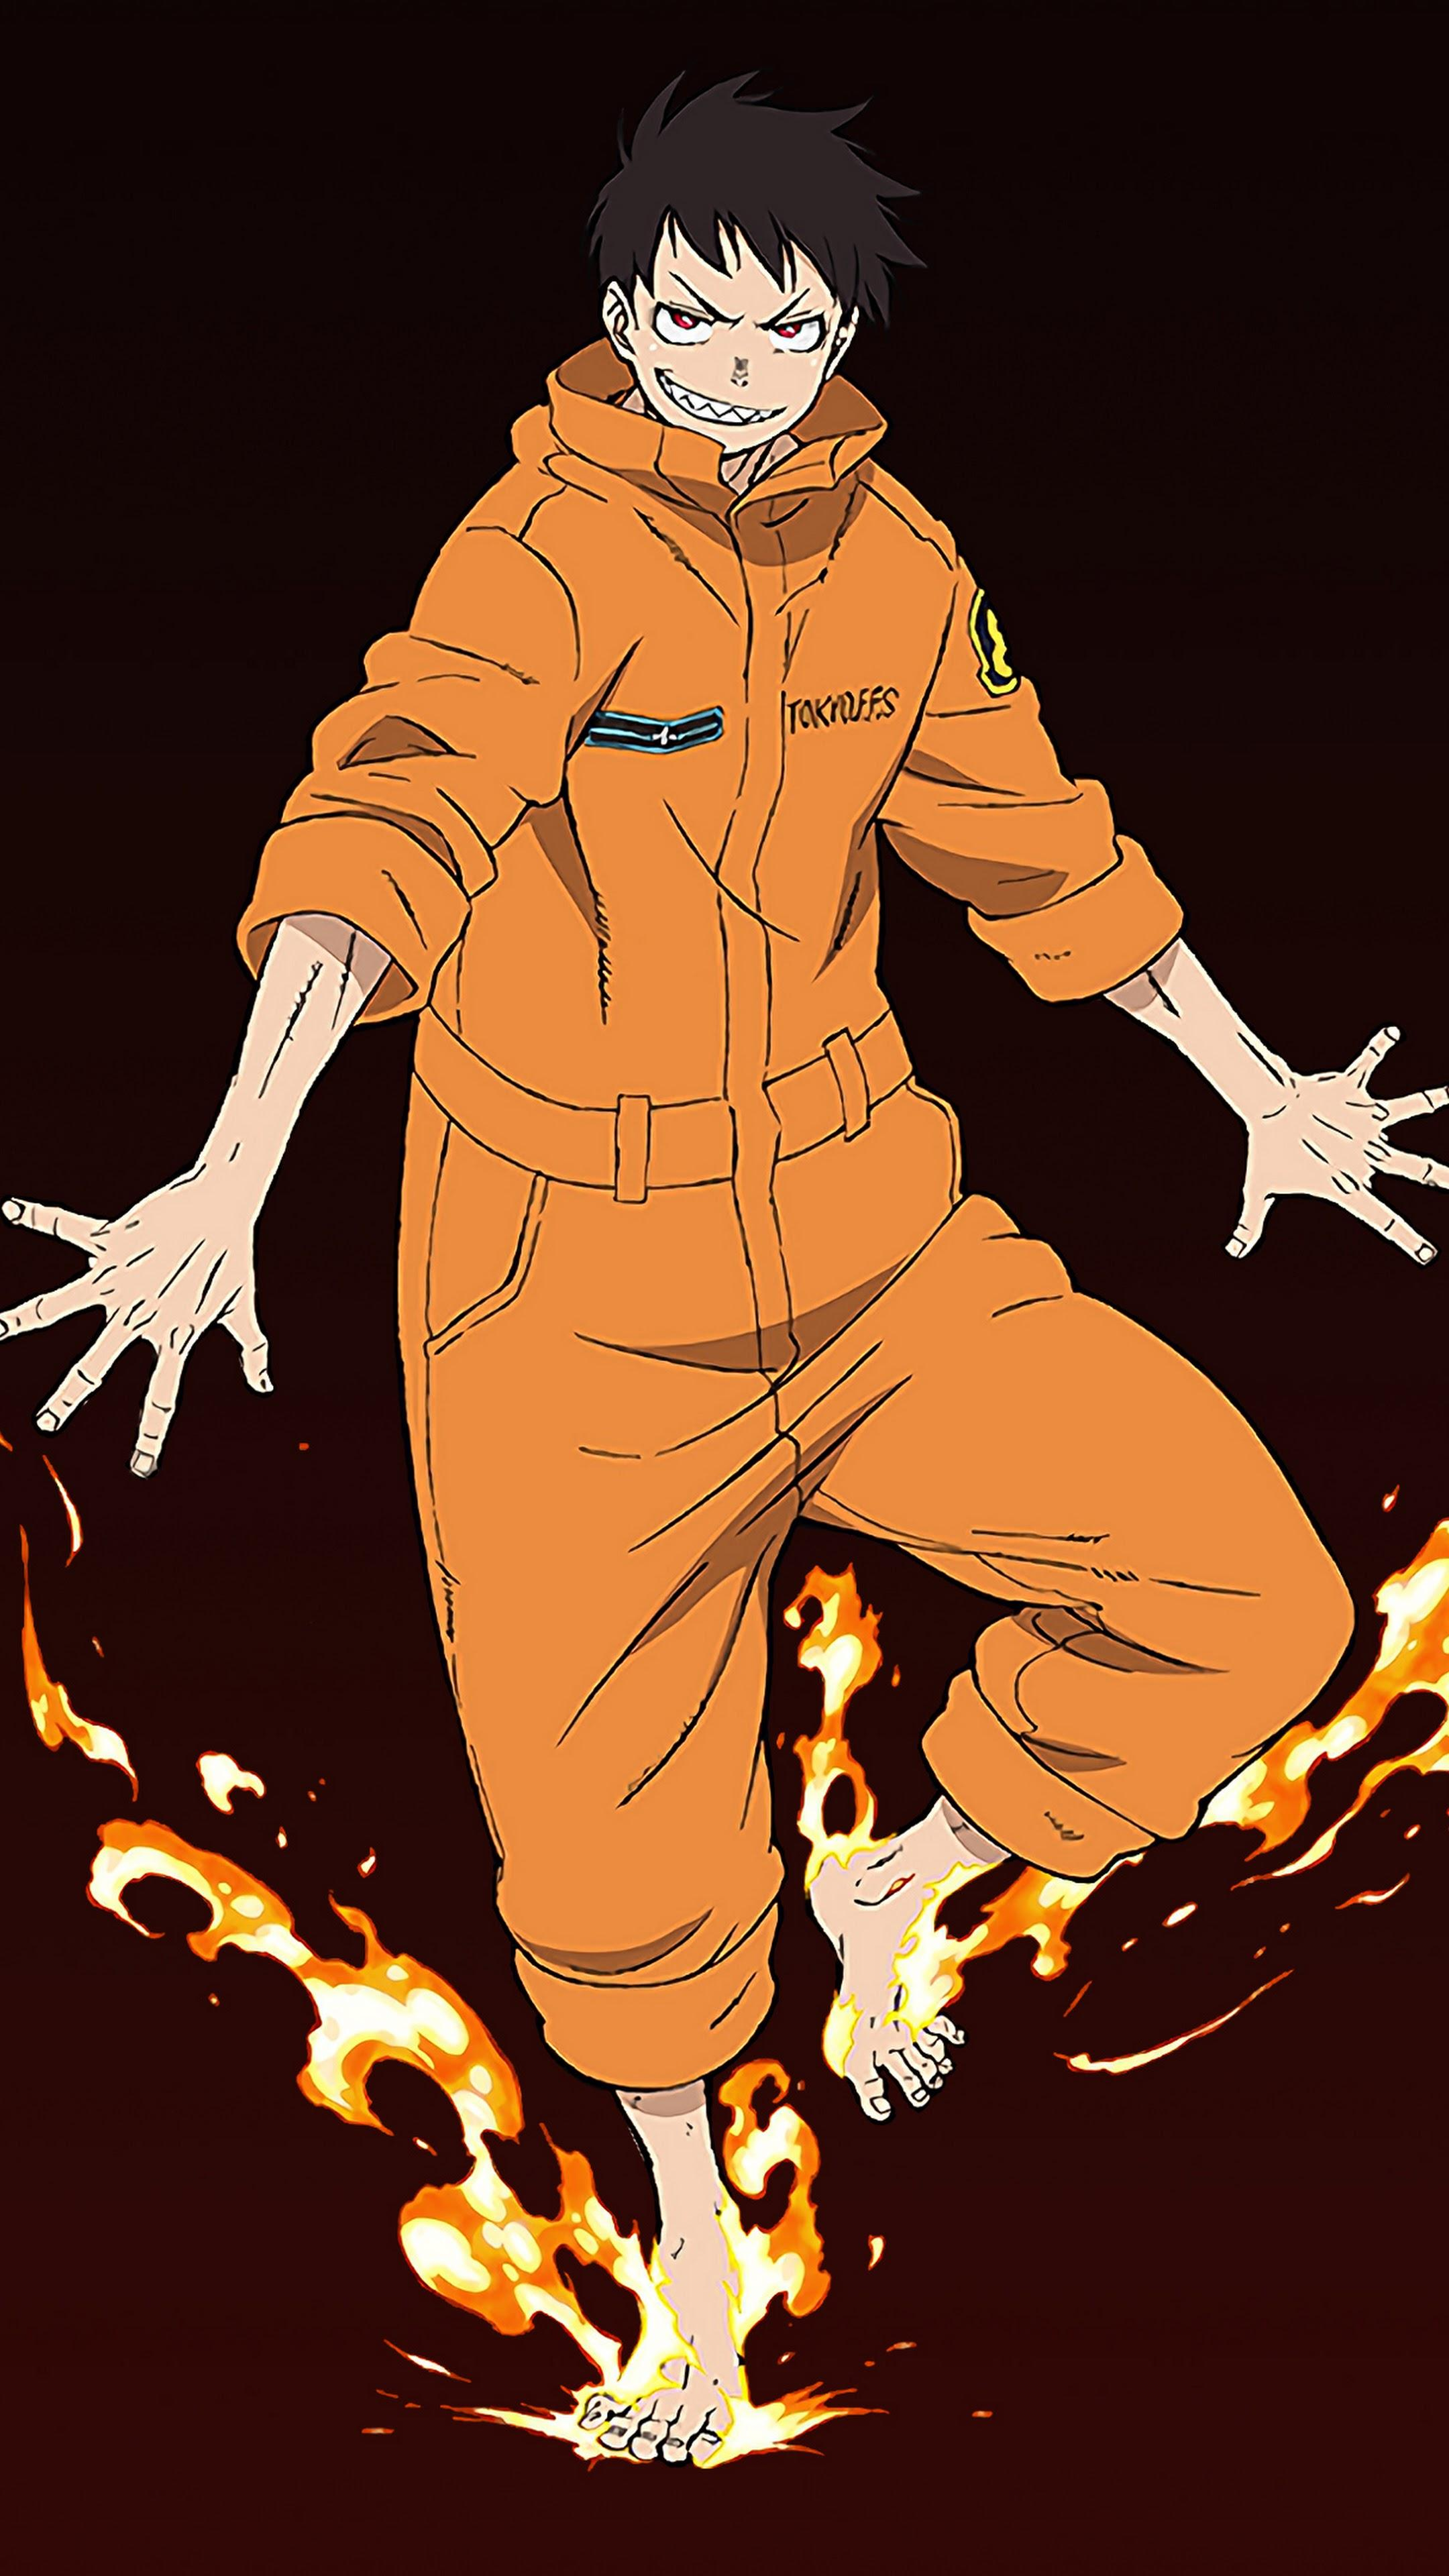 Fire Force Wallpapers Kolpaper Awesome Free Hd Wallpapers Tons of awesome fire force wallpapers to download for free. fire force wallpapers kolpaper